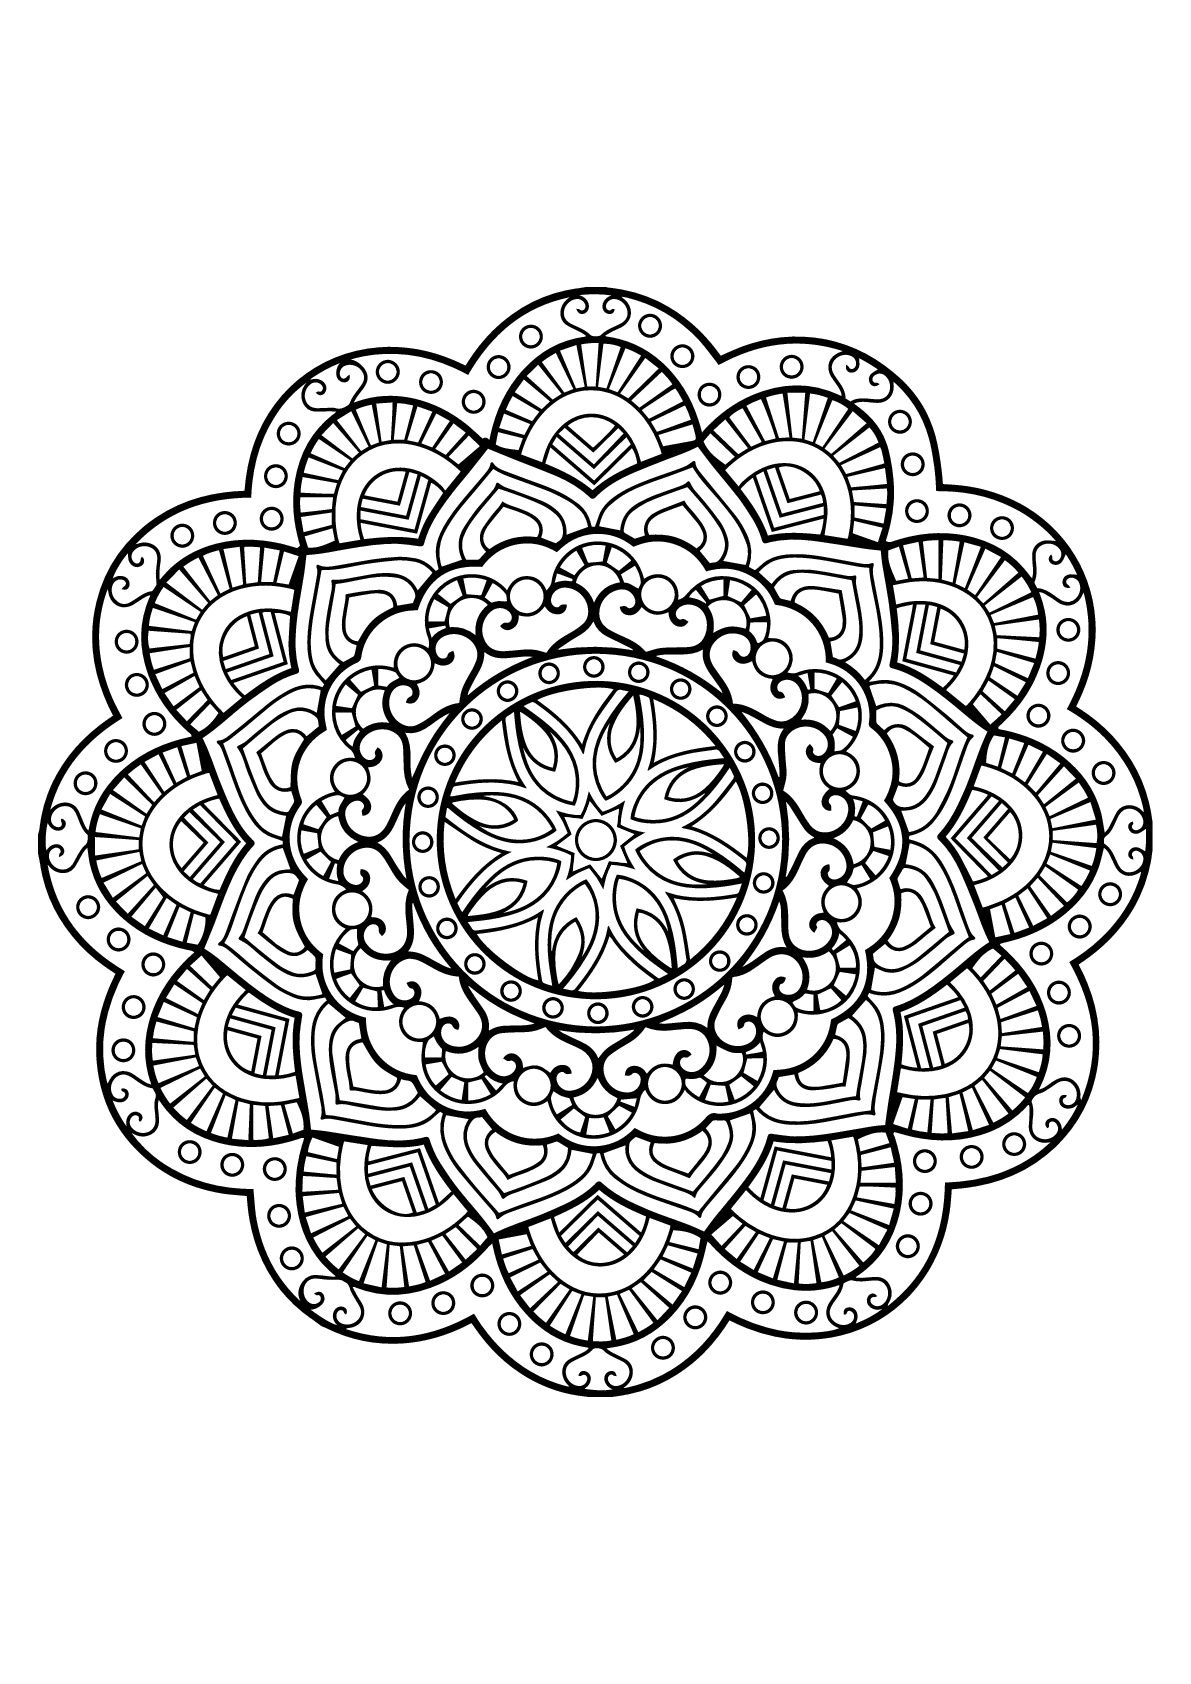 Here Are Difficult Mandalas Coloring Pages For Adults To Print For Free Mandala Is A Sanskrit Mandala Coloring Pages Mandala Coloring Puppy Coloring Pages